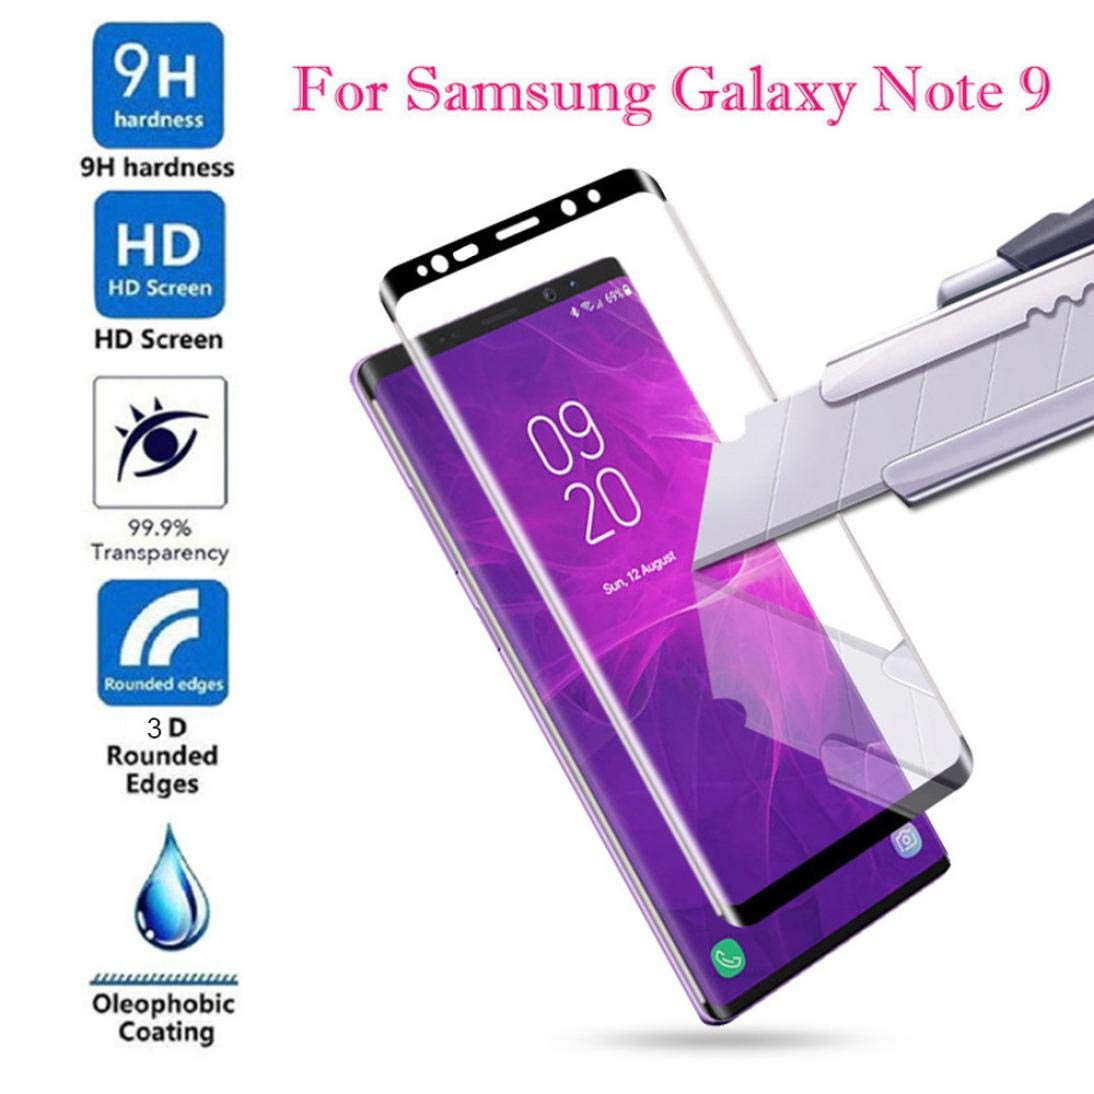 For Smasung Galaxy Note 9 Screen Protector, Iusun 3D Full Cover Curved Protector Screen Tempered Glass Film For Samsung Note 9 (Clear 1) Iusun Home Accessories